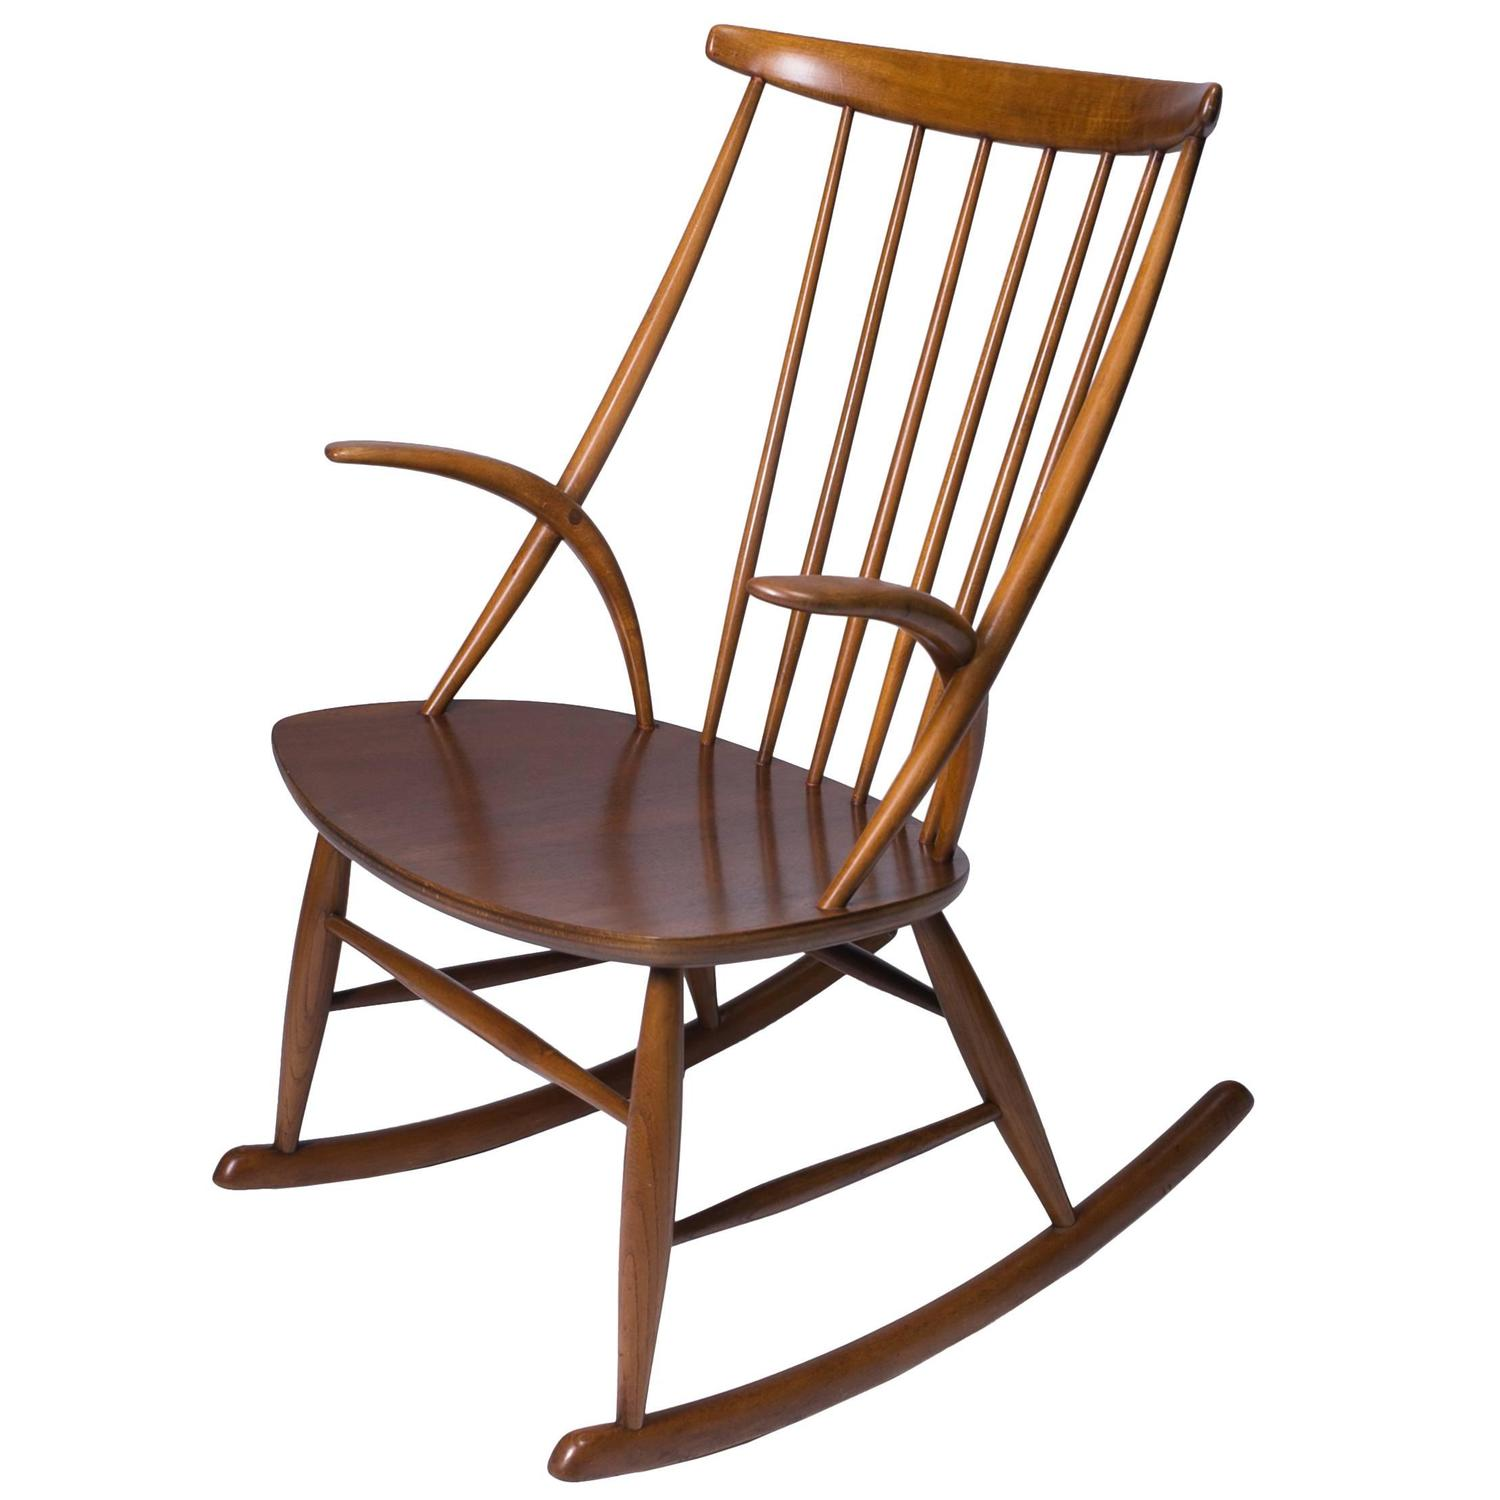 Scandinavian modern rocking chair by illum wikkelso at 1stdibs - Scandinavian chair ...